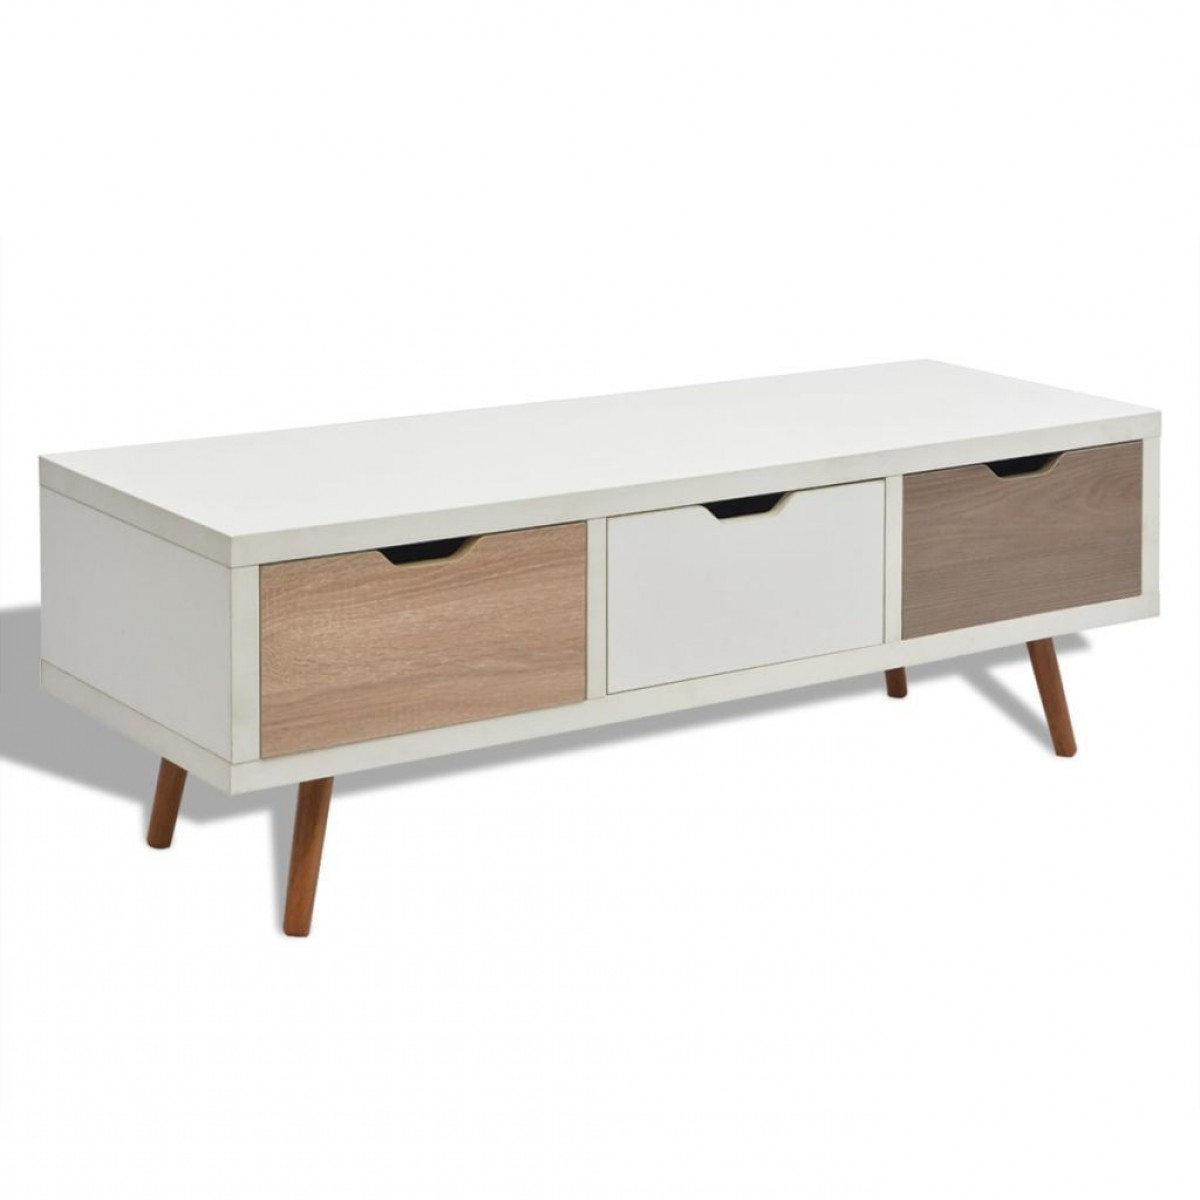 Beech Tv Stands Within Favorite Modern White Beech 3 Drawer Tv Stand Cabinet – Home Done (View 14 of 20)